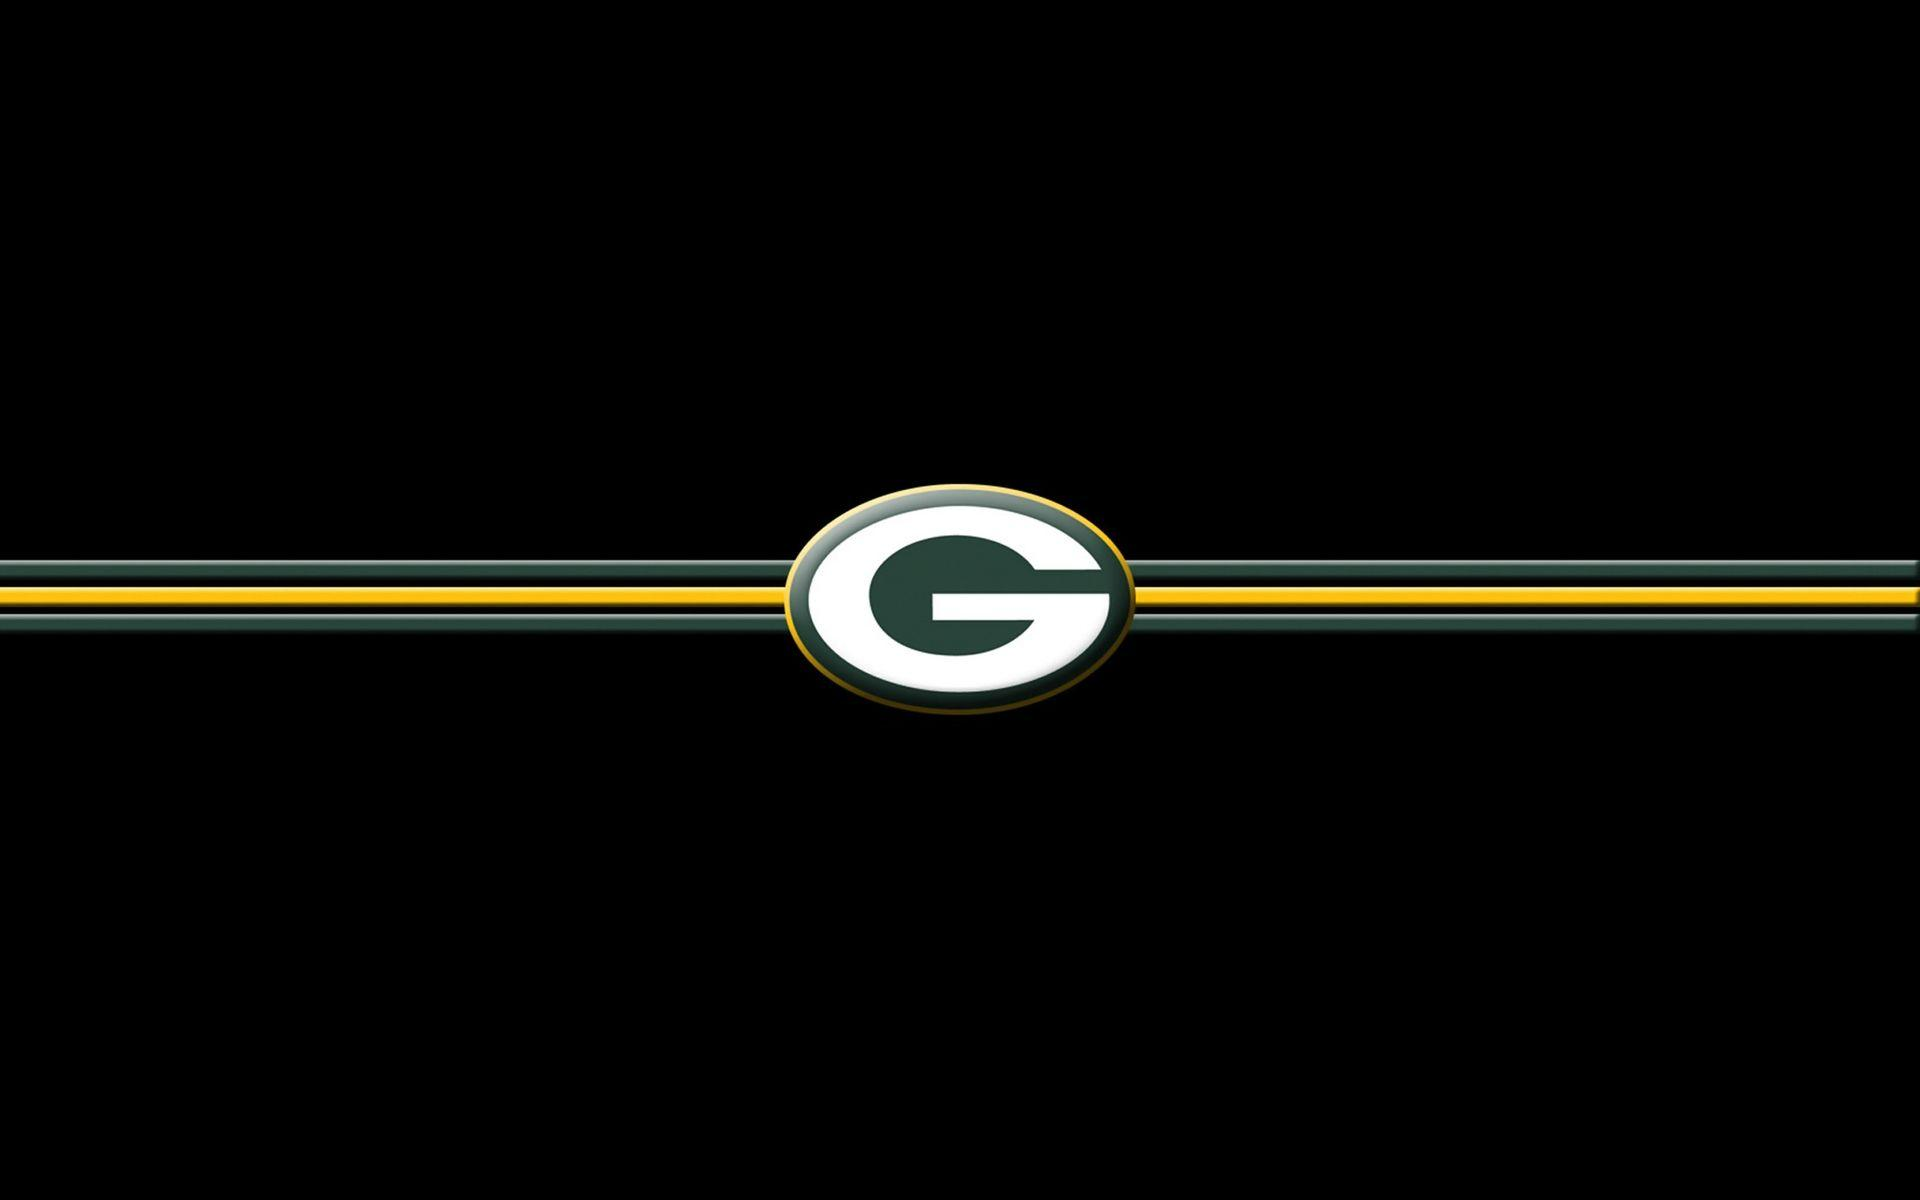 Dark Green Bay Packers Wallpapers 52898 1920x1200 px ~ HDWallSource